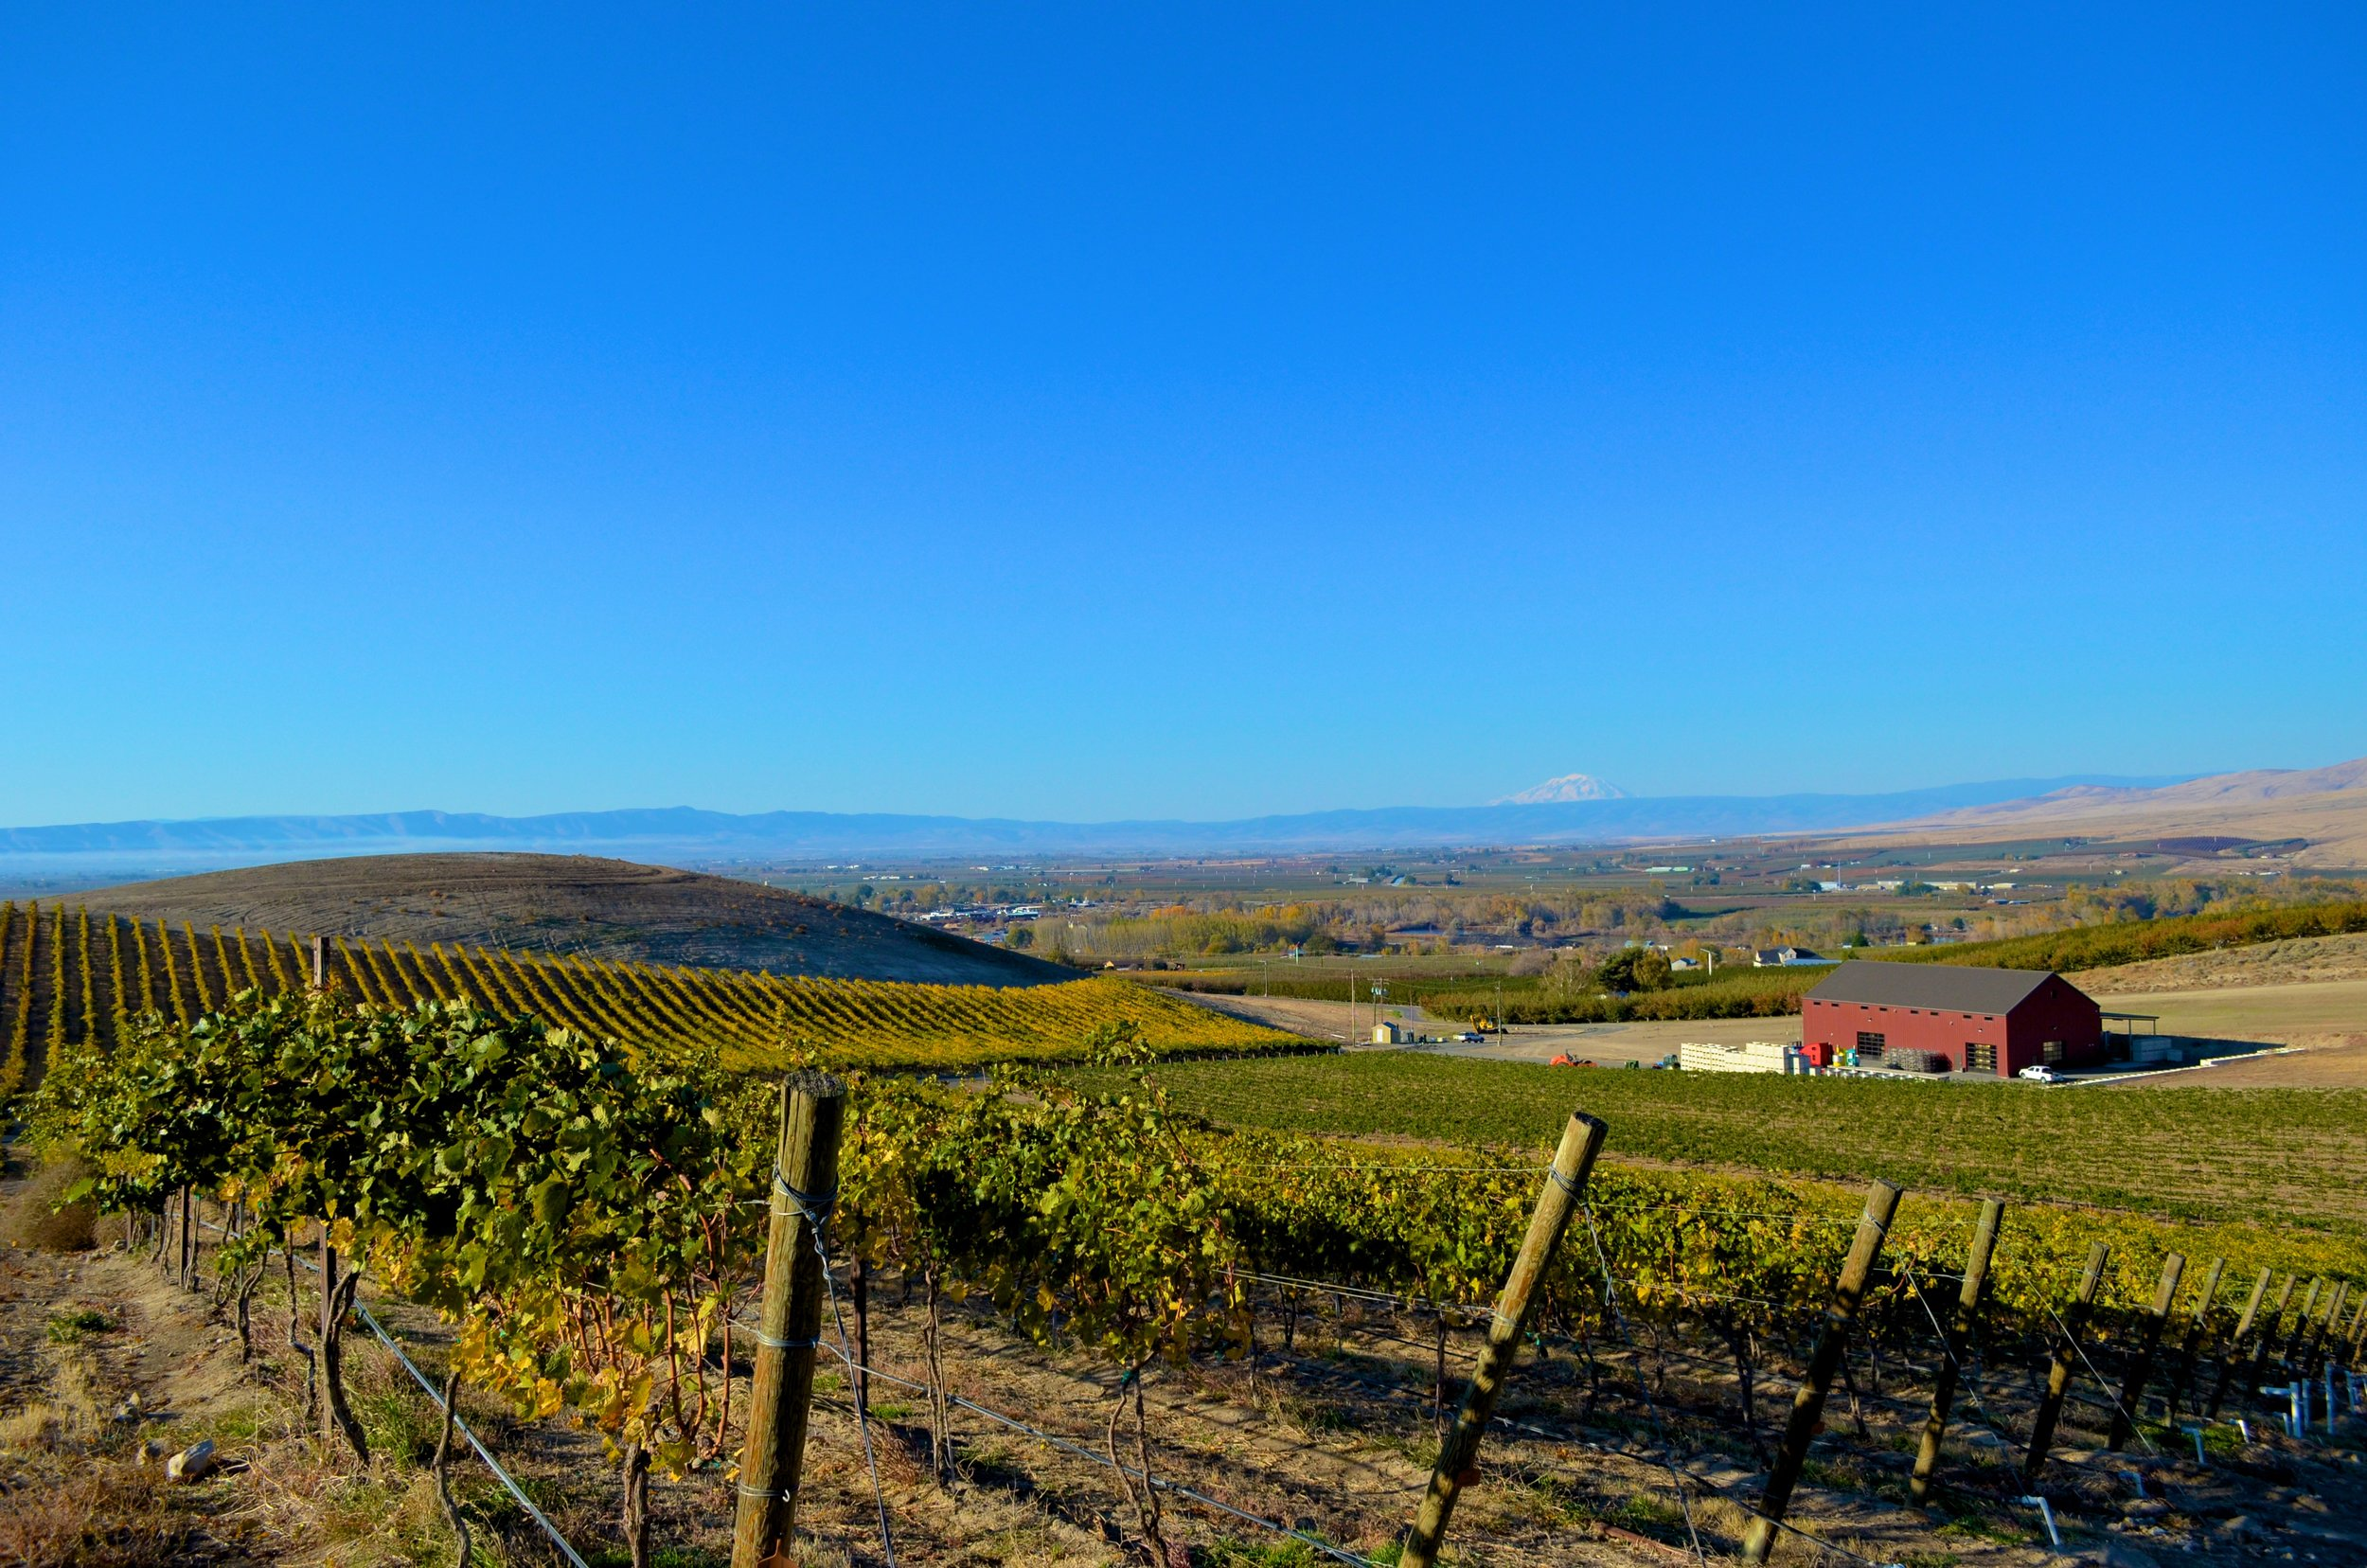 Owen-Roes-new-winery-and-vineyard-in-the-Yakima-Valley1.jpg